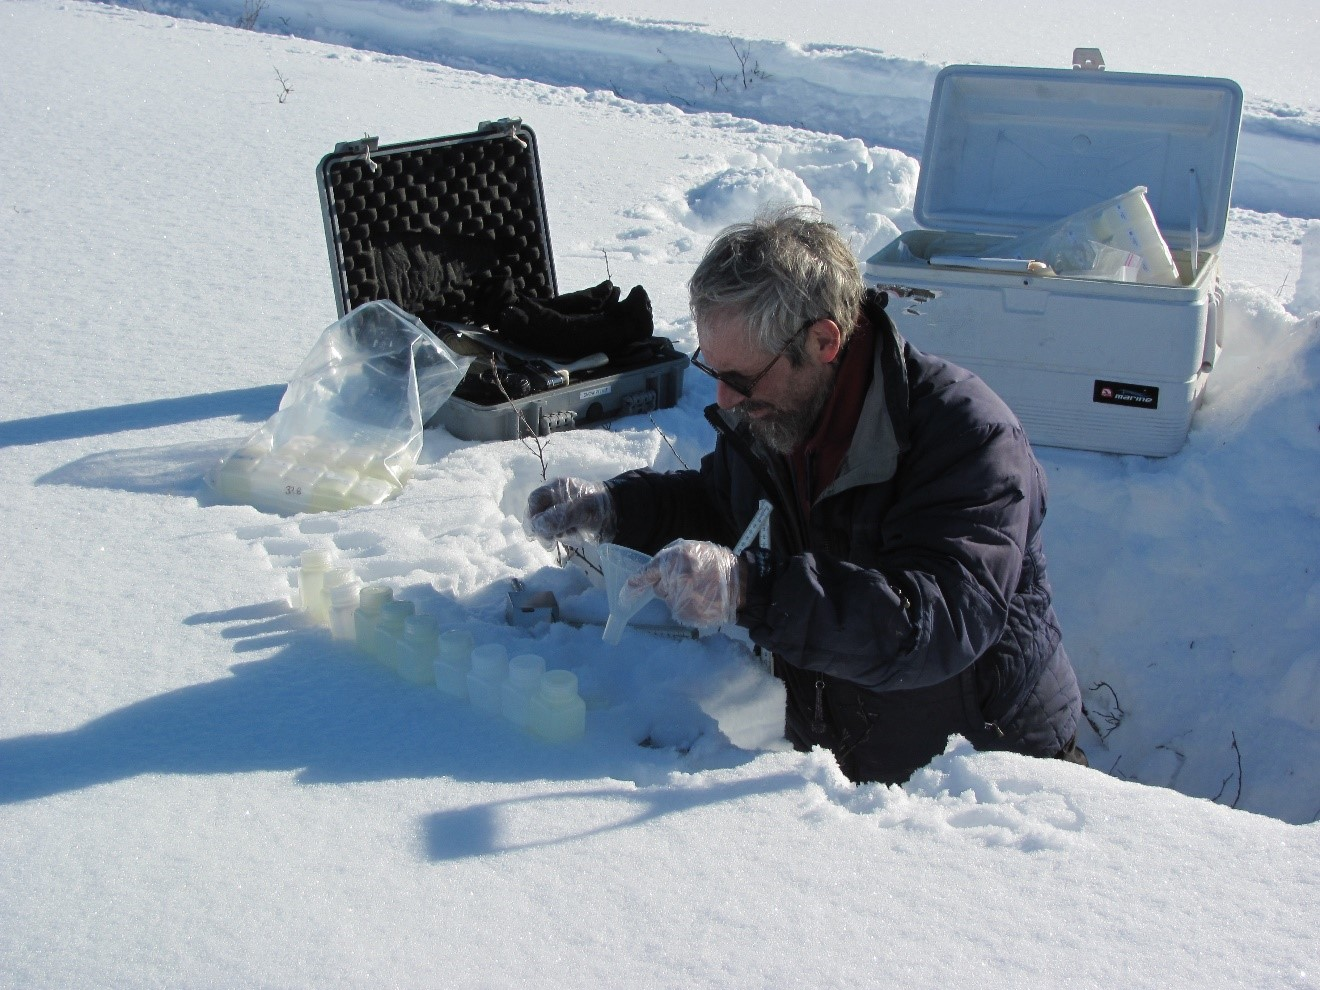 Standing in a field-site pit, Matthew Sturm collects snow samples. Different types influence the albedo of snow cover.